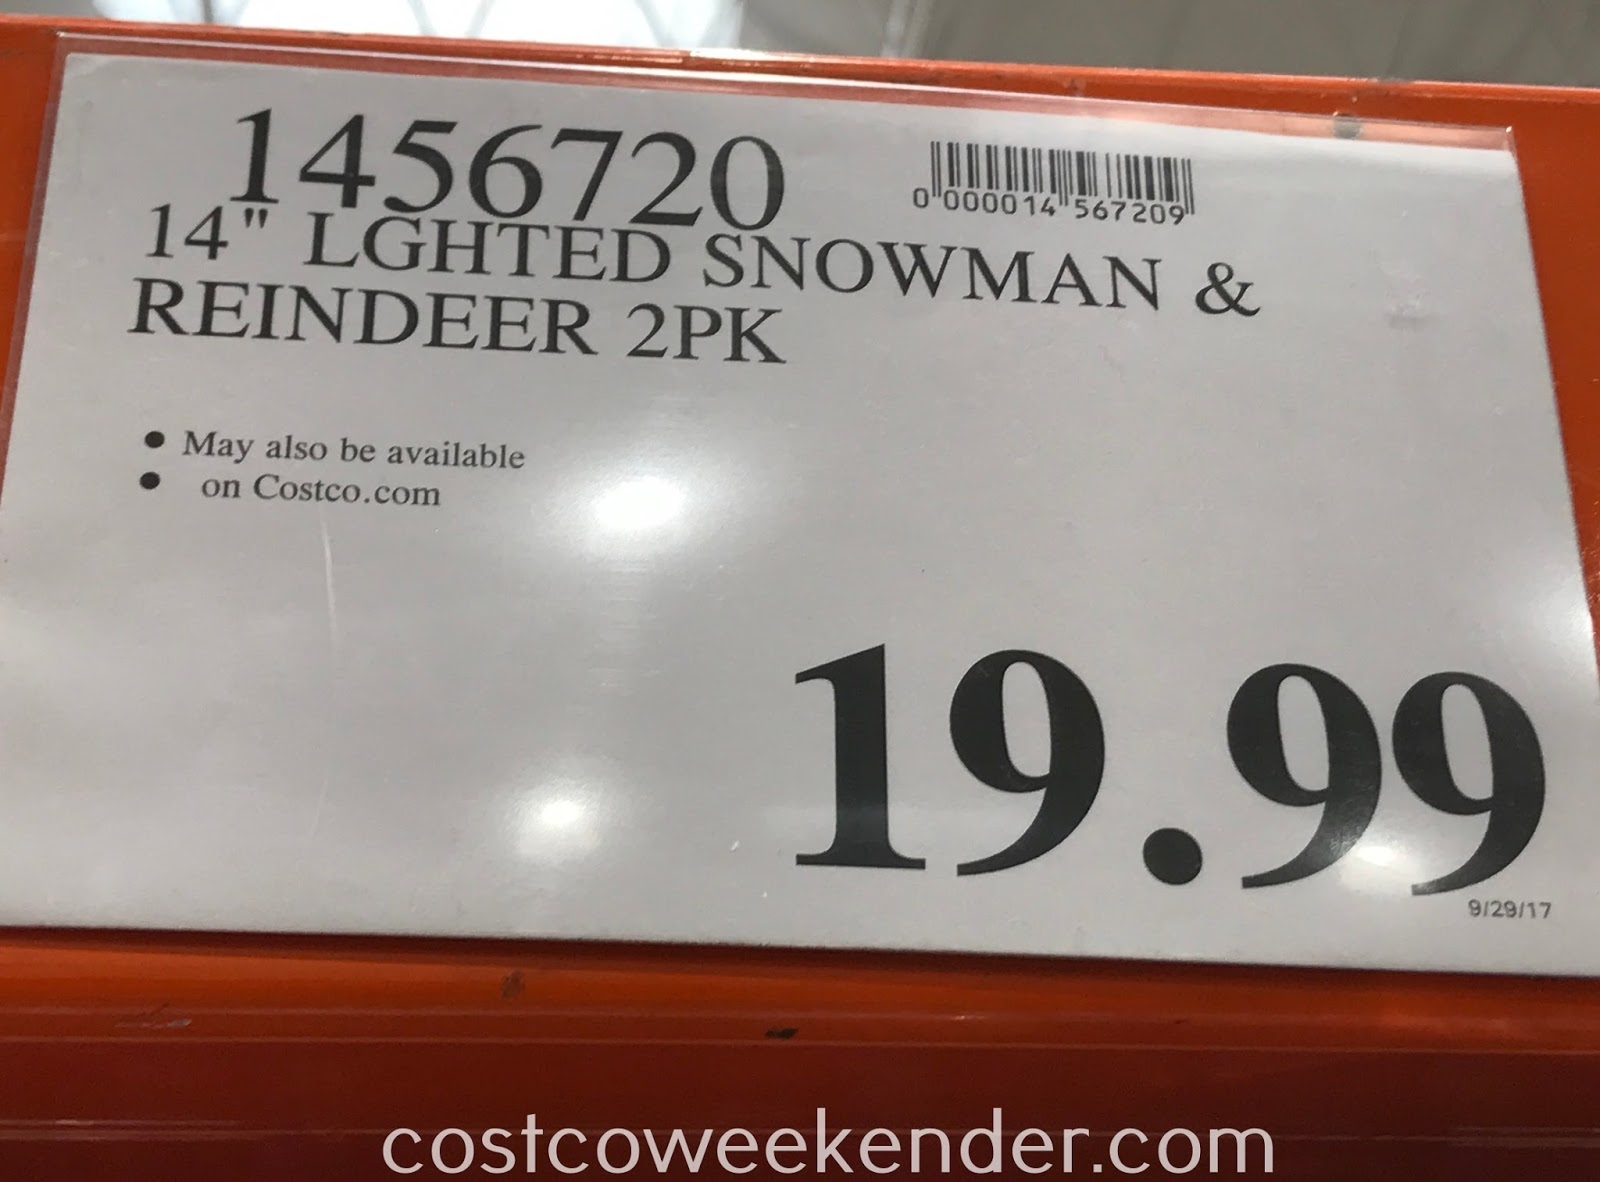 Costco 1456720 - Pack includes lighted Reindeer and Snowman